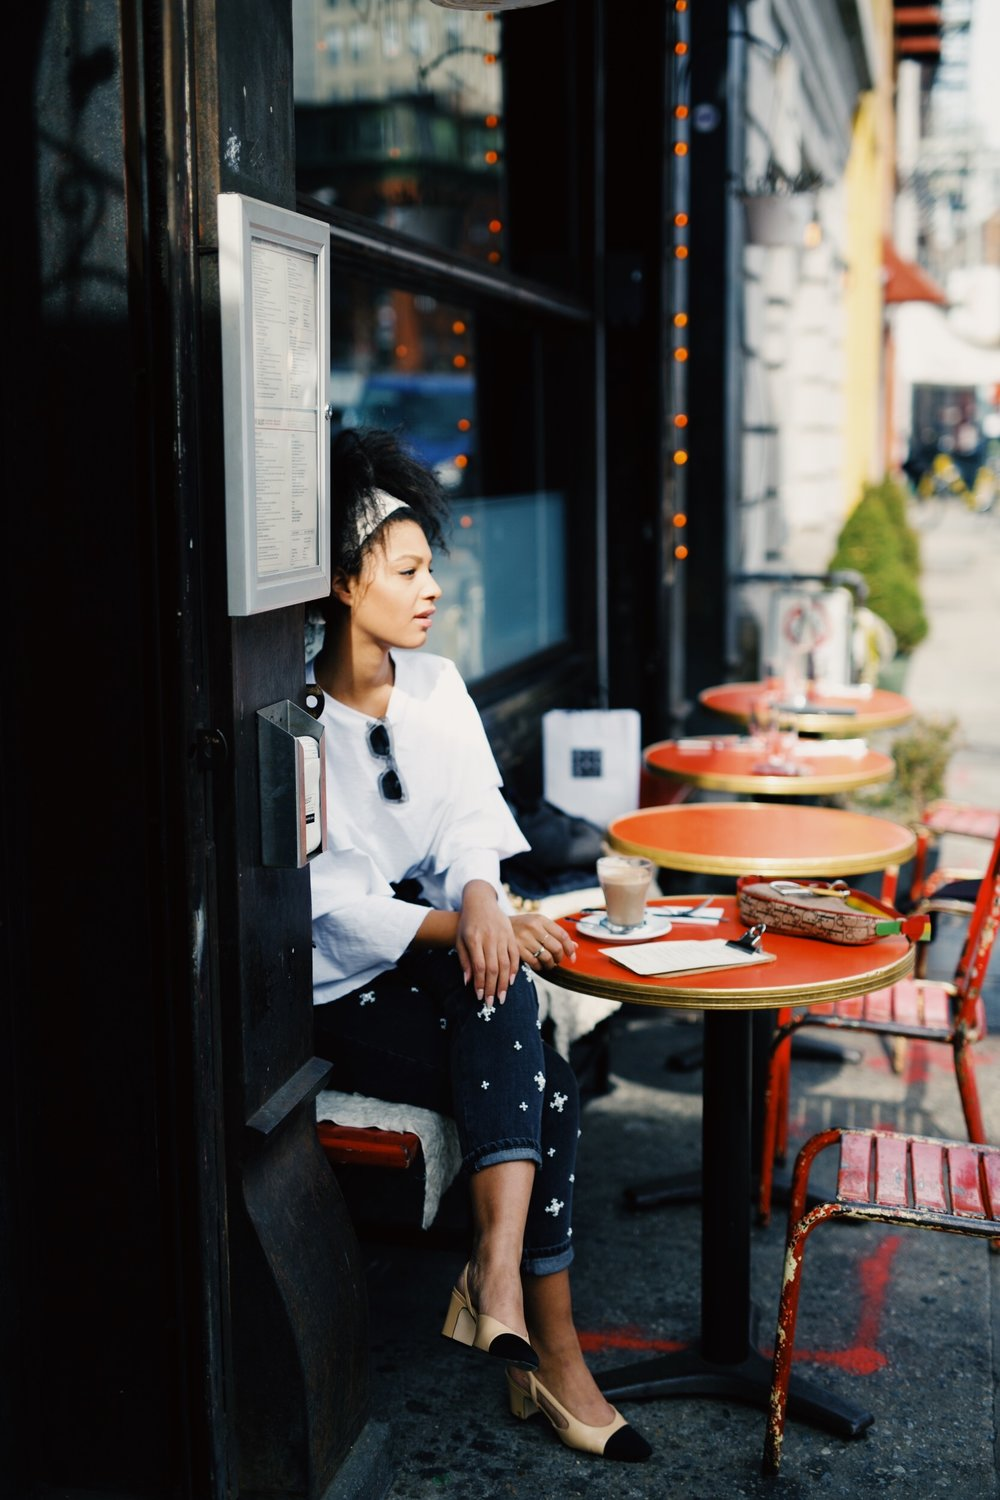 Claire Leana Millar at a Cafe in Soho wearing pearl embellished denim and Chanel Slingbacks